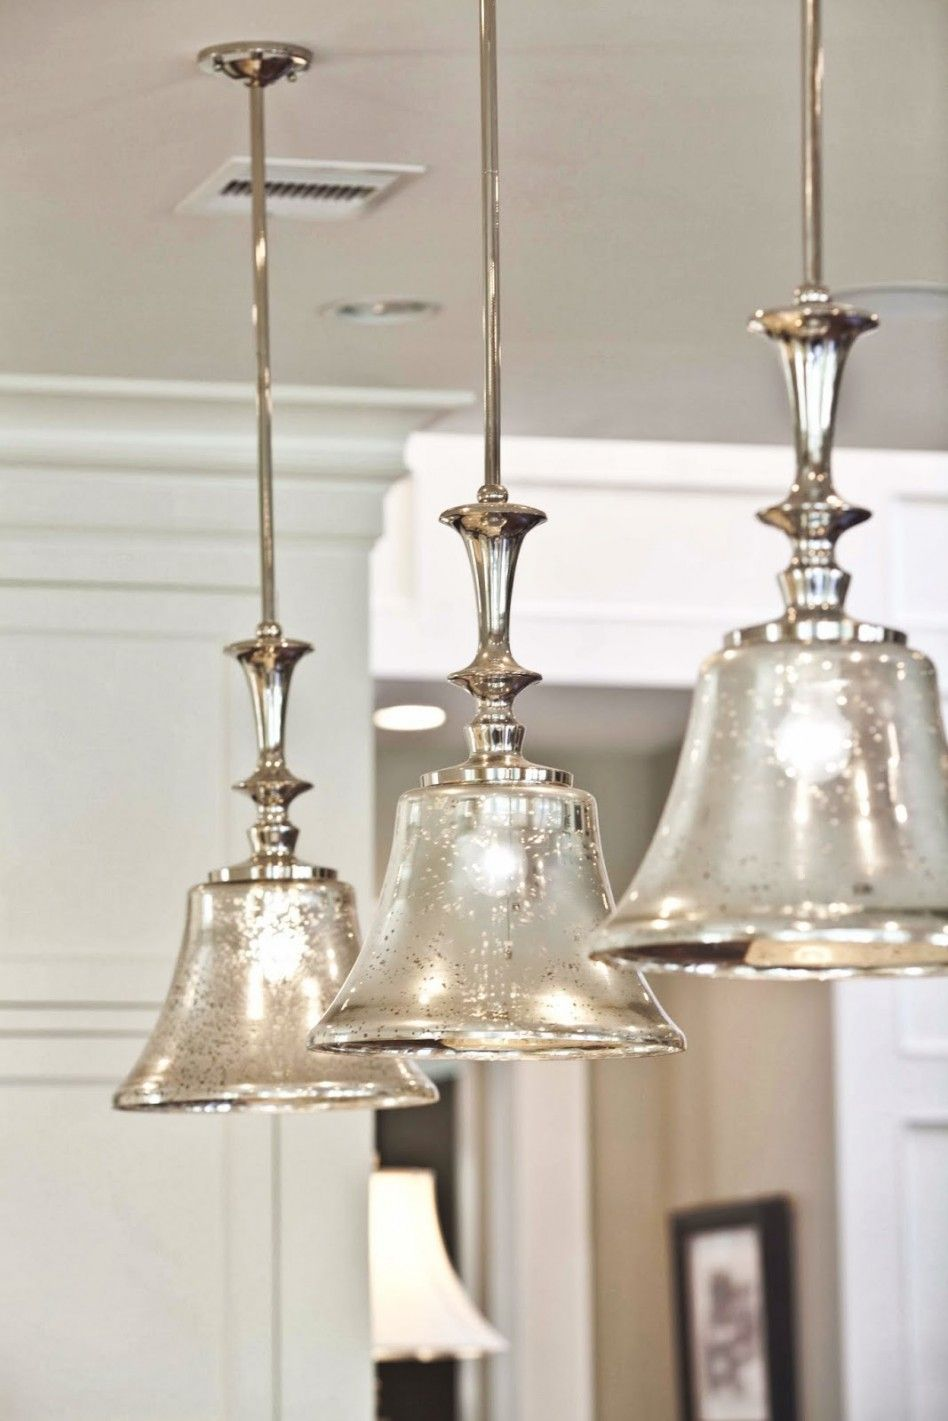 Nickel Pendant Lighting Kitchen Farmhouse Unique Decorative Lighting Google Search Cool Log